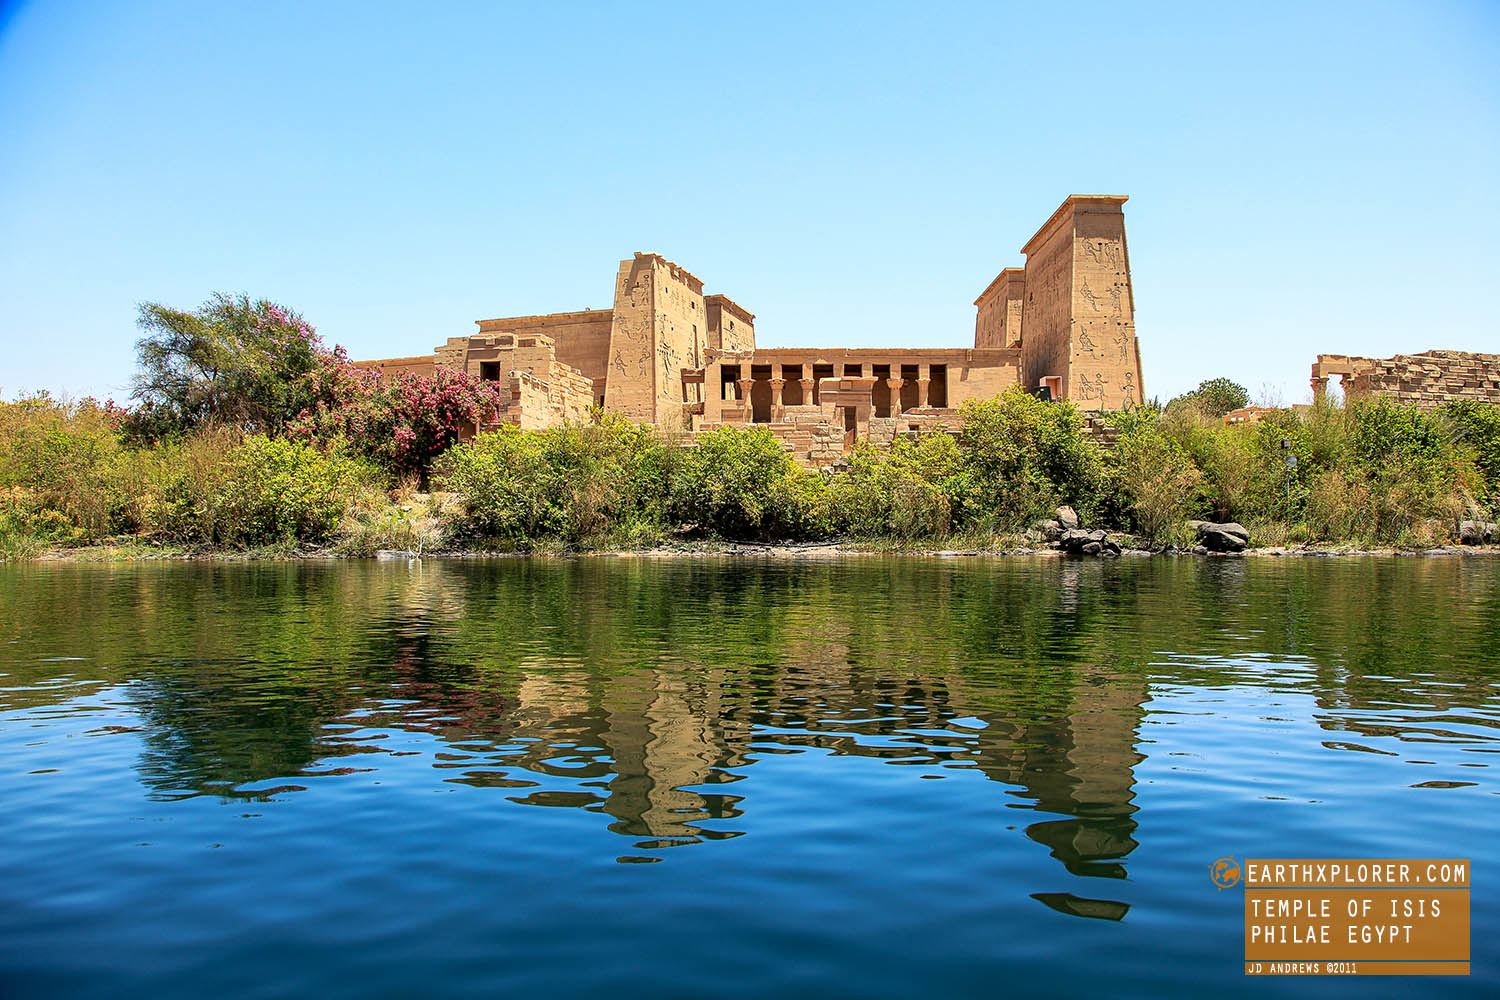 Located on Agilkia Island in Lake Nasser